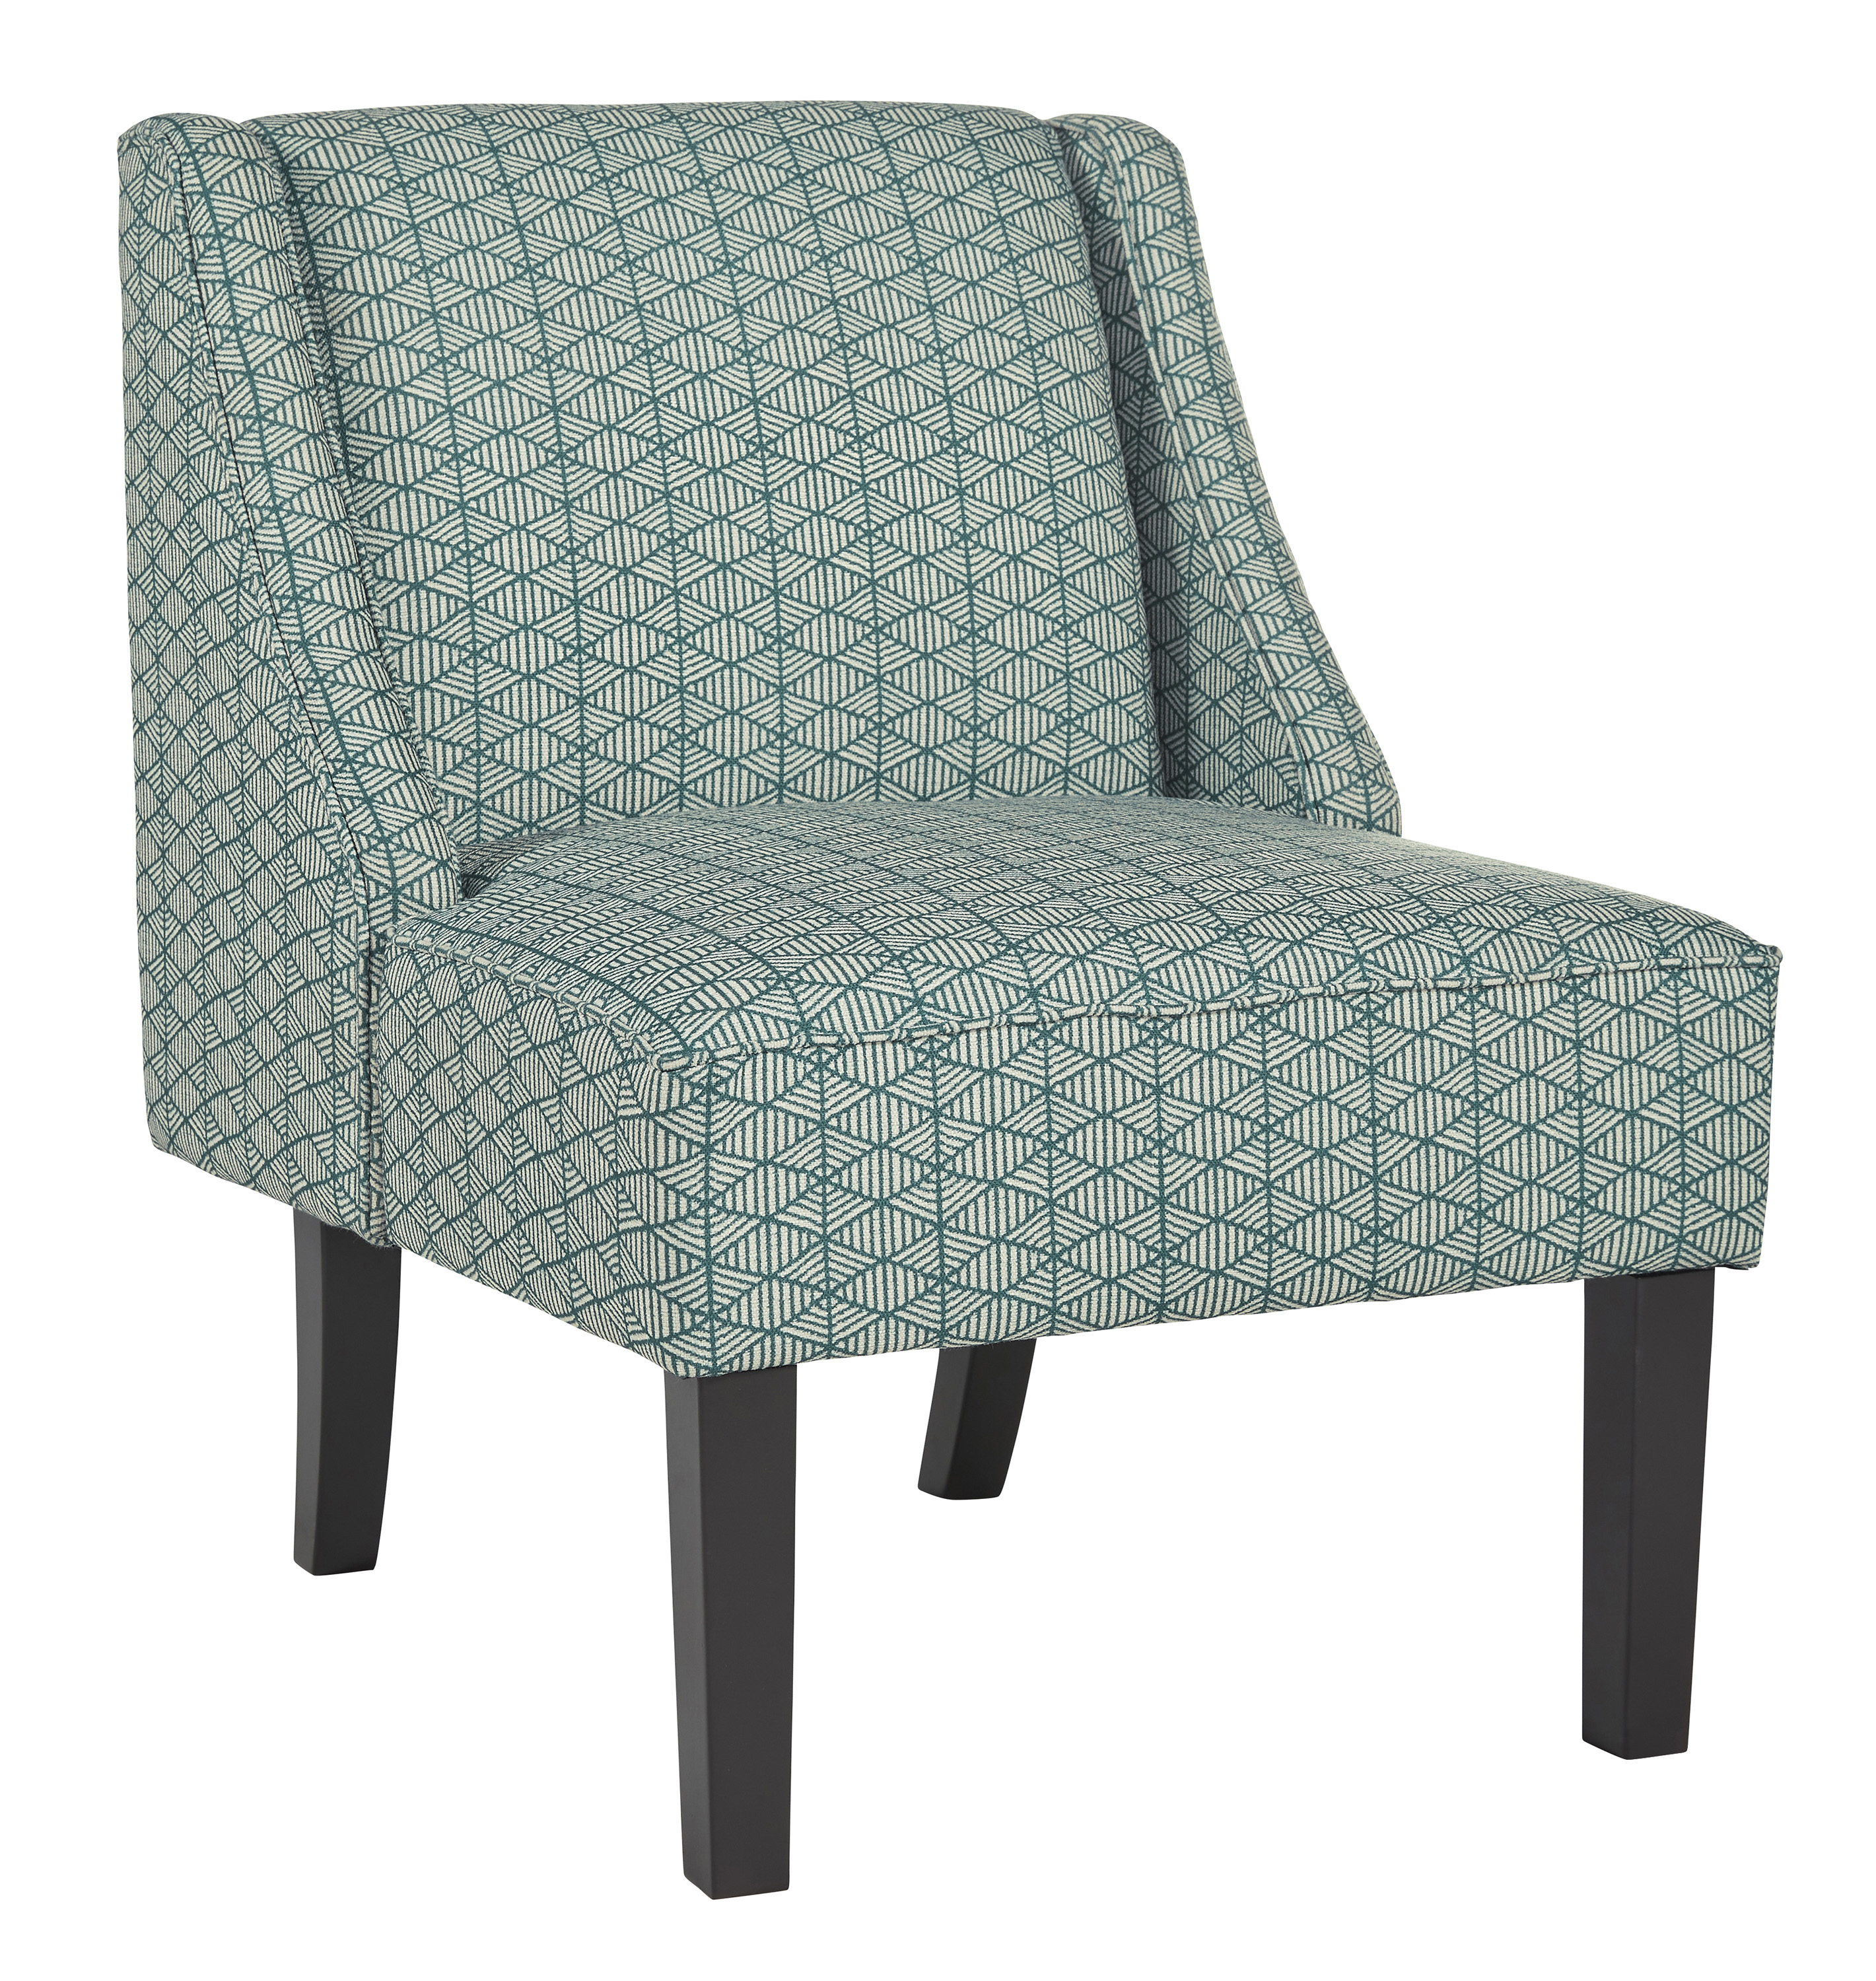 Janesley Accent Chair by Signature Design by Ashley at Lynn's Furniture & Mattress